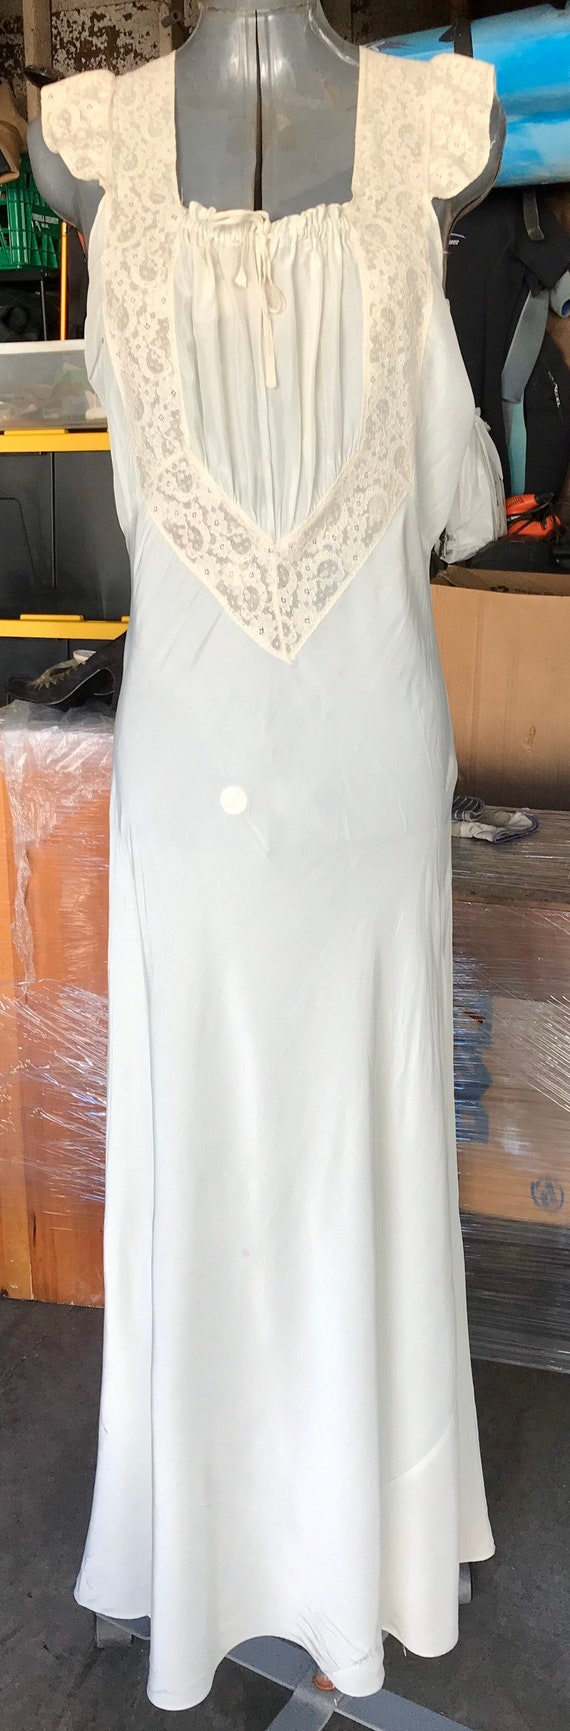 Vintage 40s Harlow style rayon satin nightgown